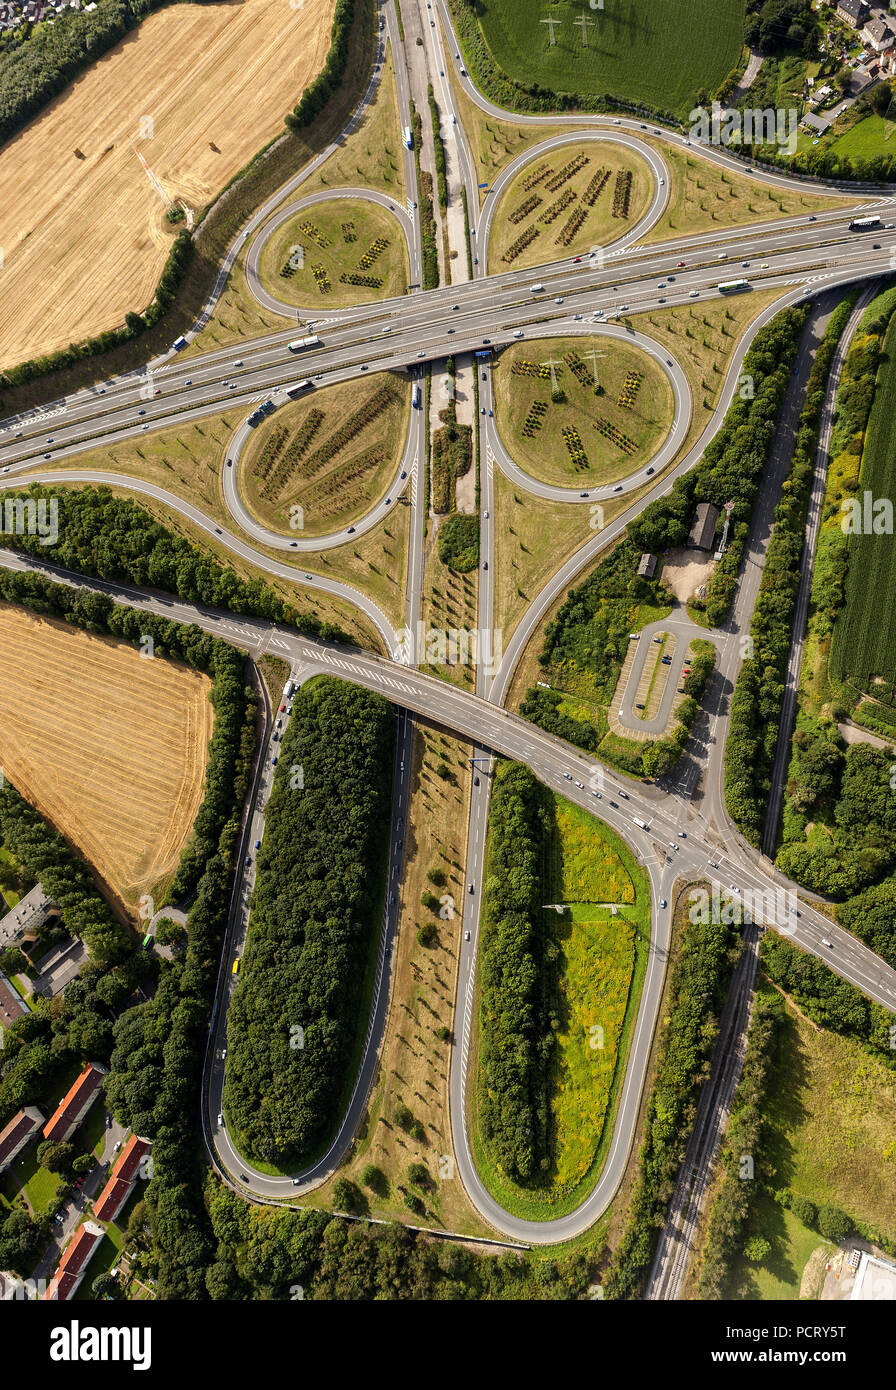 Aerial view, motorway junction DO-Bodelschwingh CAS-Ost A 45 and A42, Dortmund, Ruhr area, North Rhine-Westphalia, Germany, Europe - Stock Image